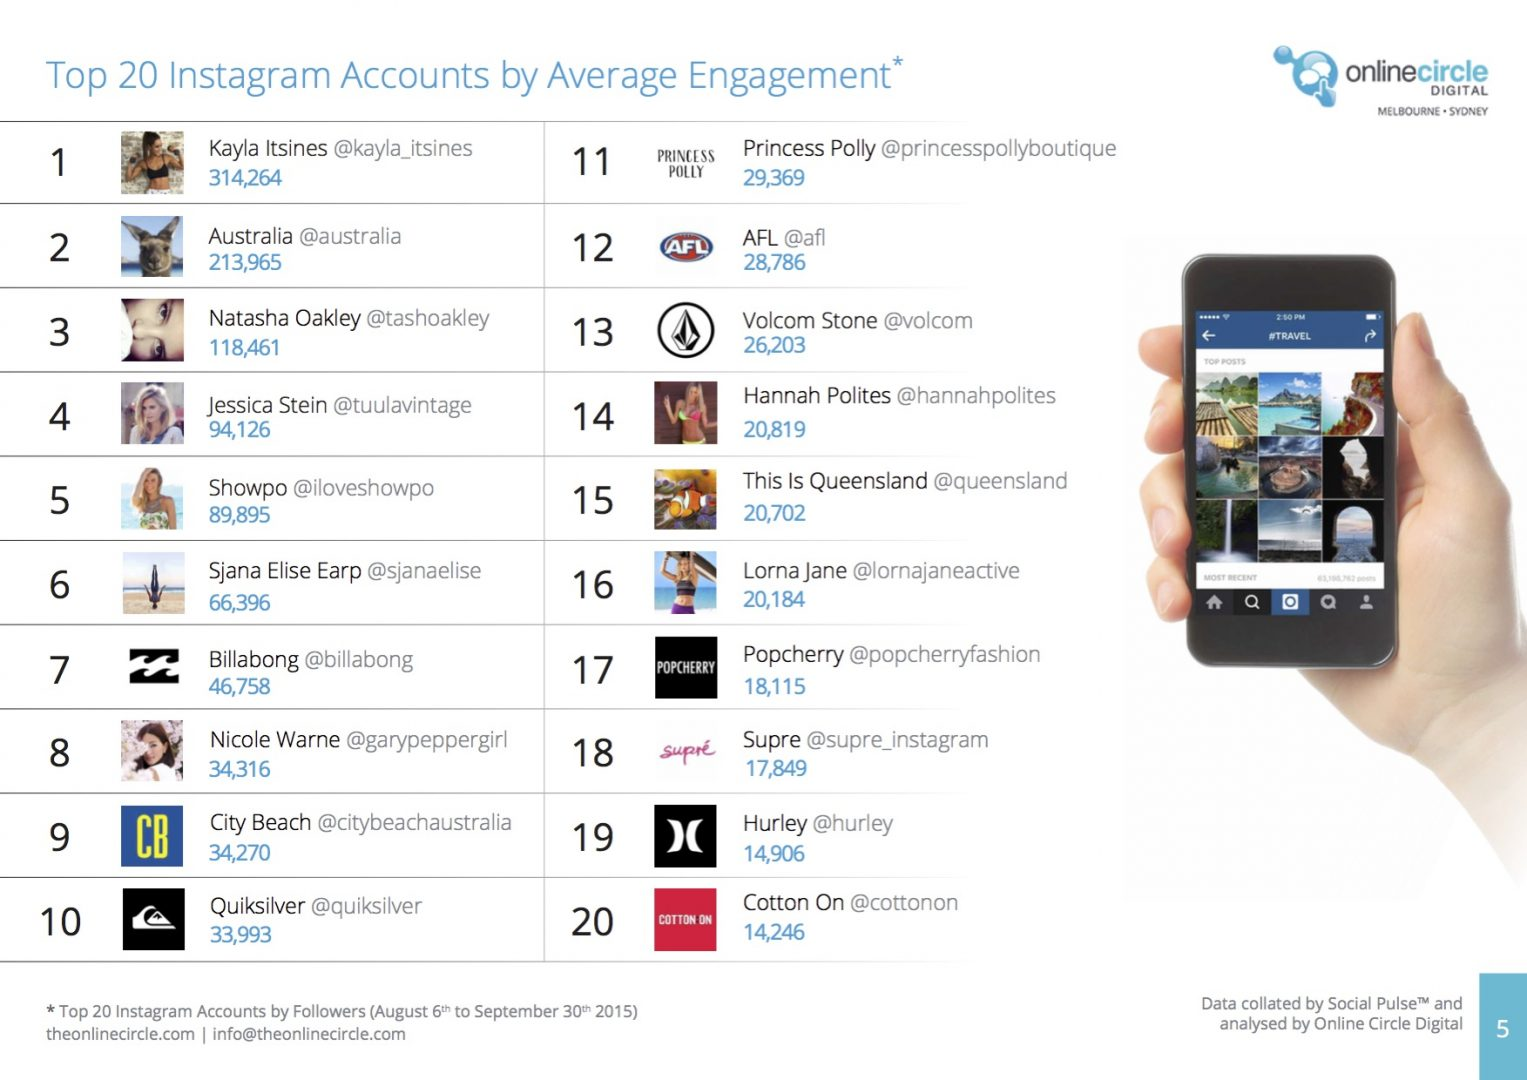 Top 20 Instagram Accounts by Average Engagement